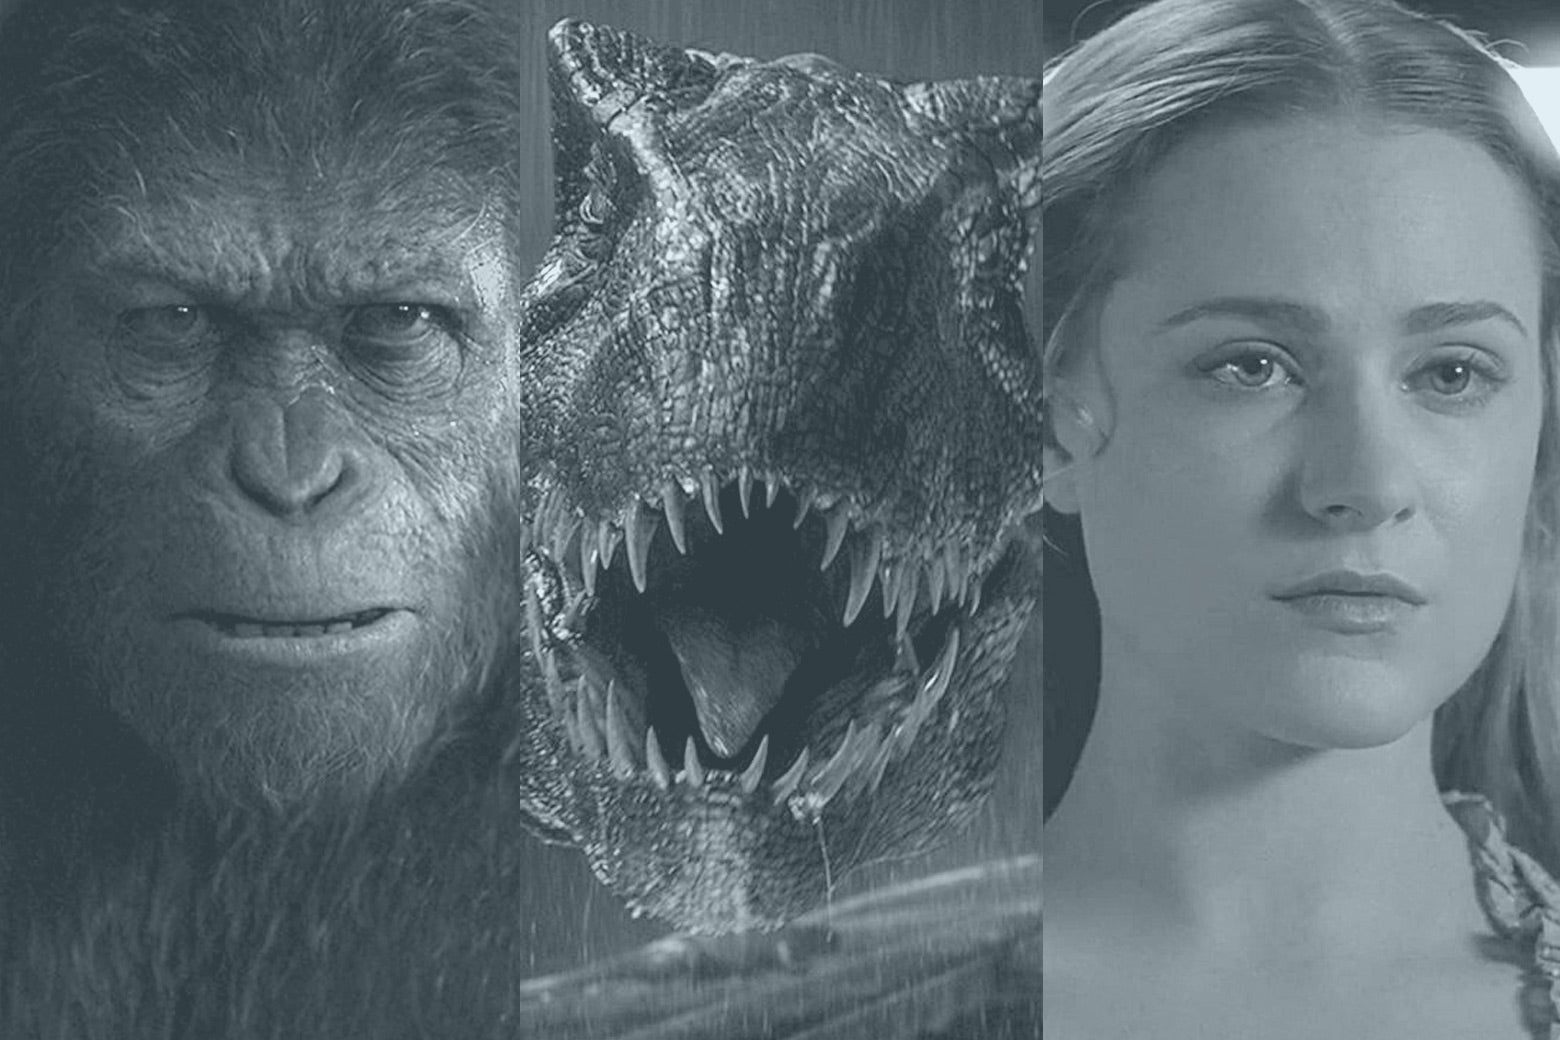 Stills from War of the Planet of the Apes (of an ape), Jurassic World: Fallen Kingdom (of a dinosaur), and Westworld (of Evan Rachel Wood as Dolores).